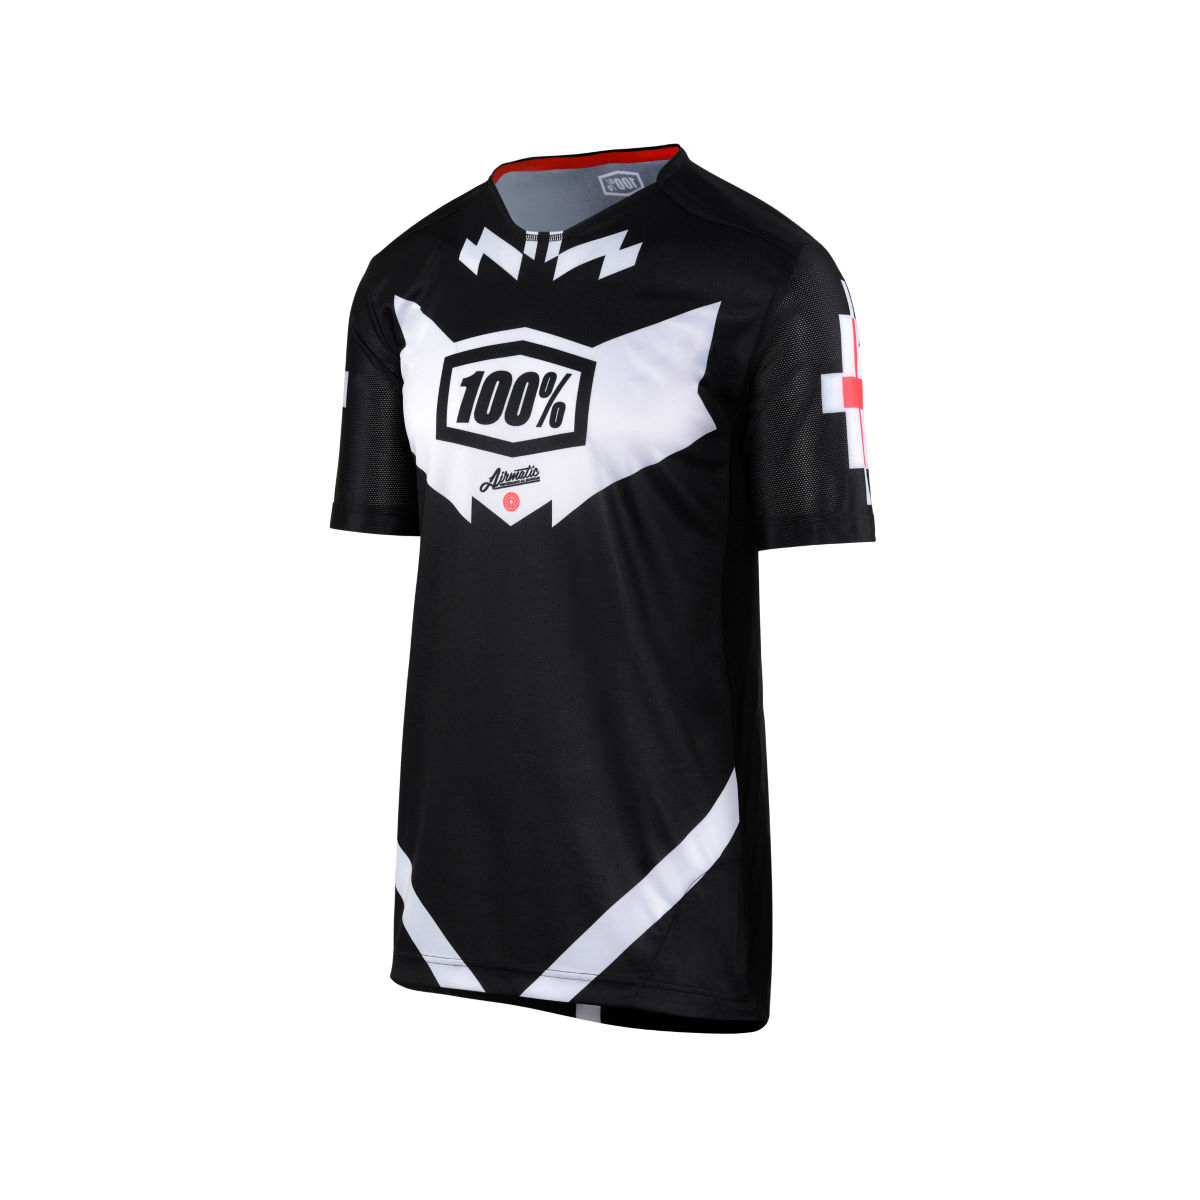 100% Airmatic Jeromino Jersey - Maillots